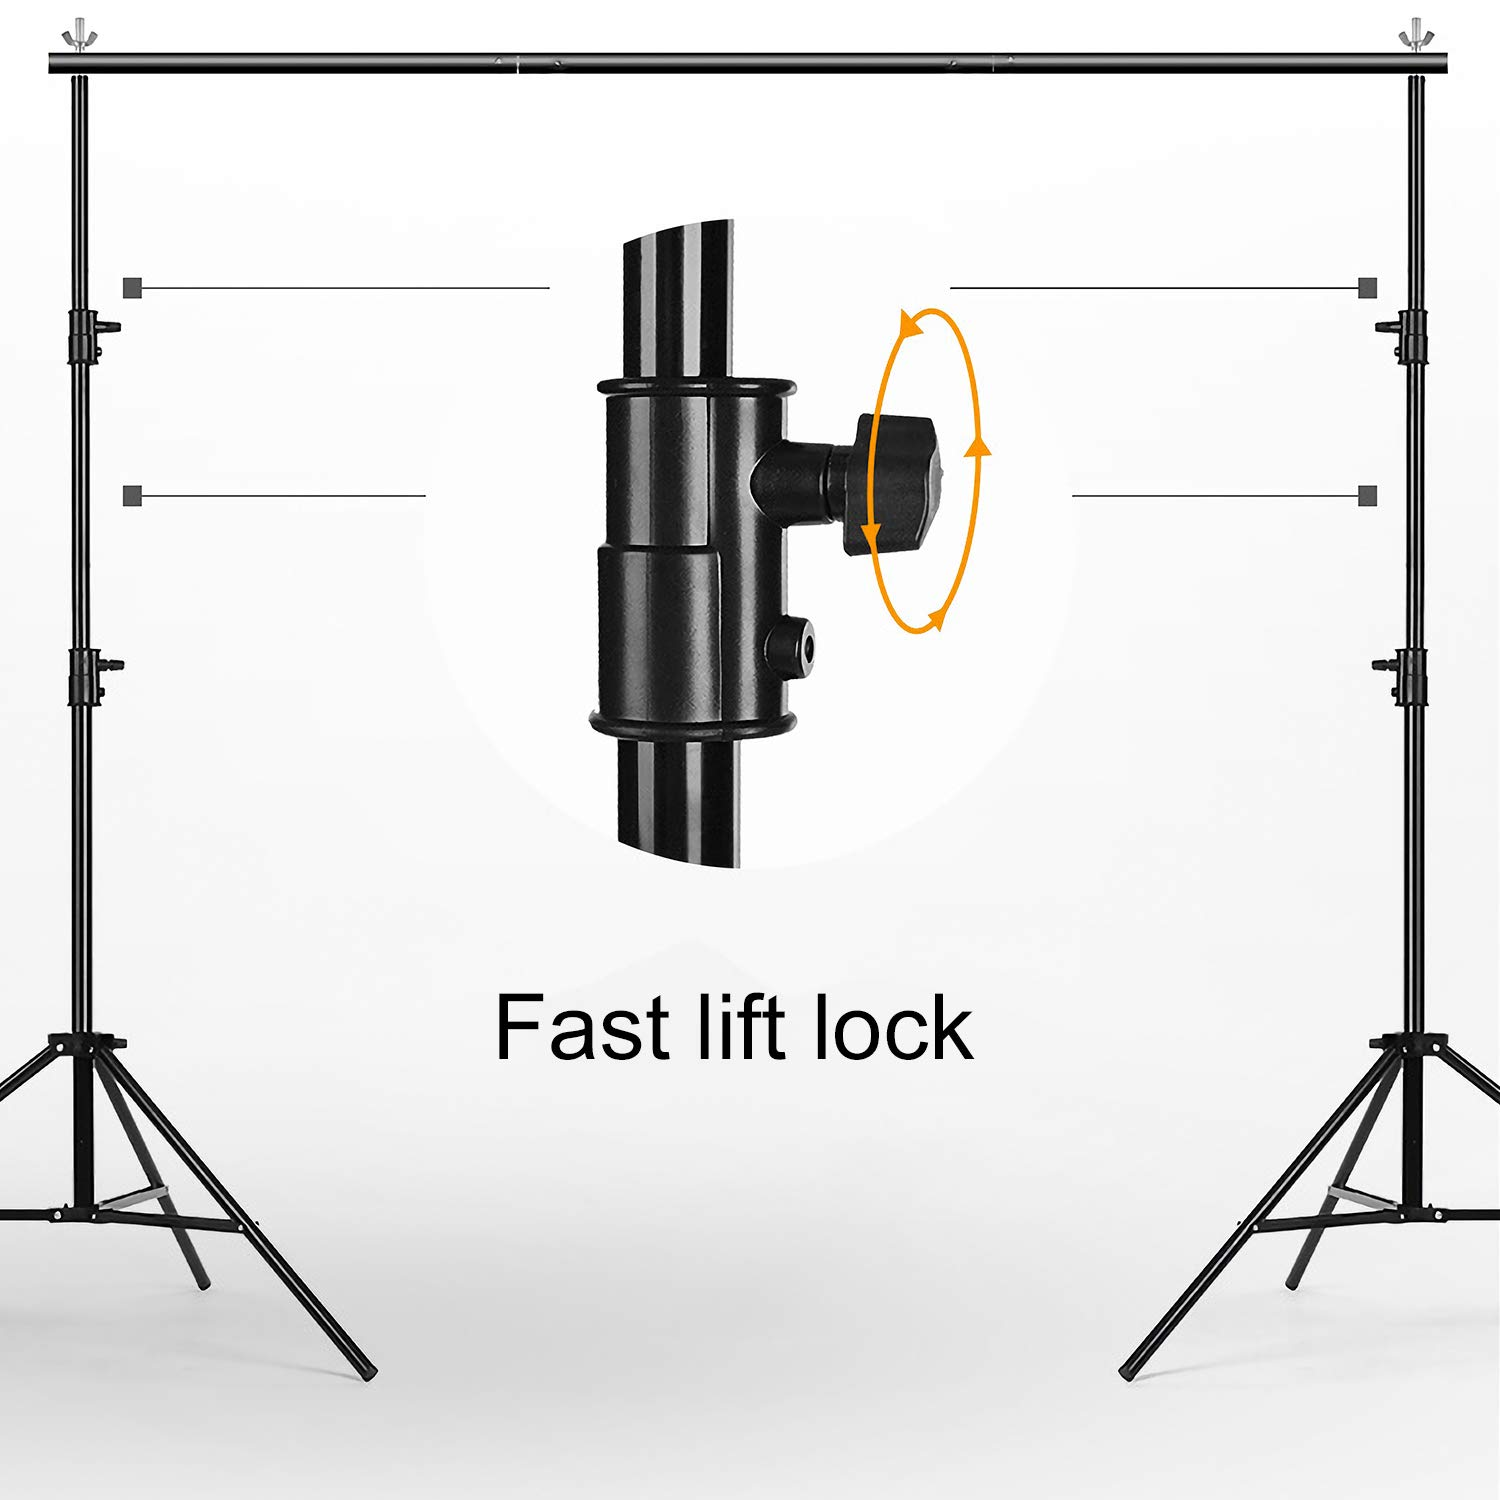 MOUNTDOG 6.5ftx10ft / 2M x3M Backdrop Support Stand Adjustable Photography Studio Background Support System Kit with Carrying Bag for Photo Video Shooting by MOUNTDOG (Image #5)